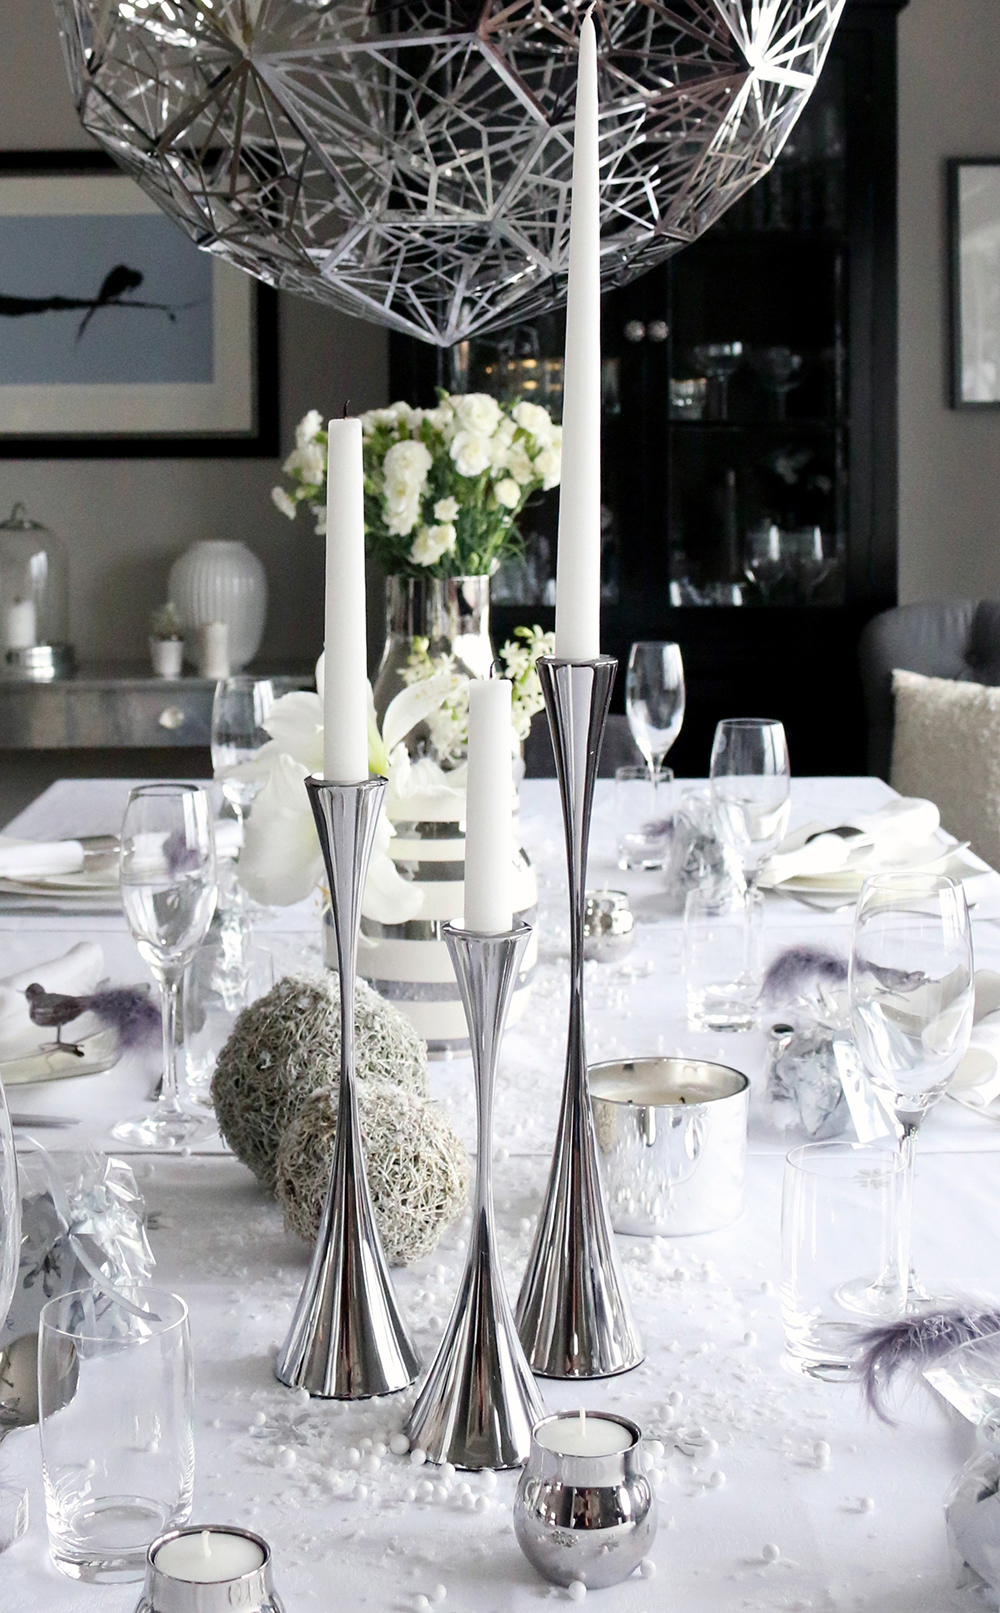 New-Year-tablesetting-3